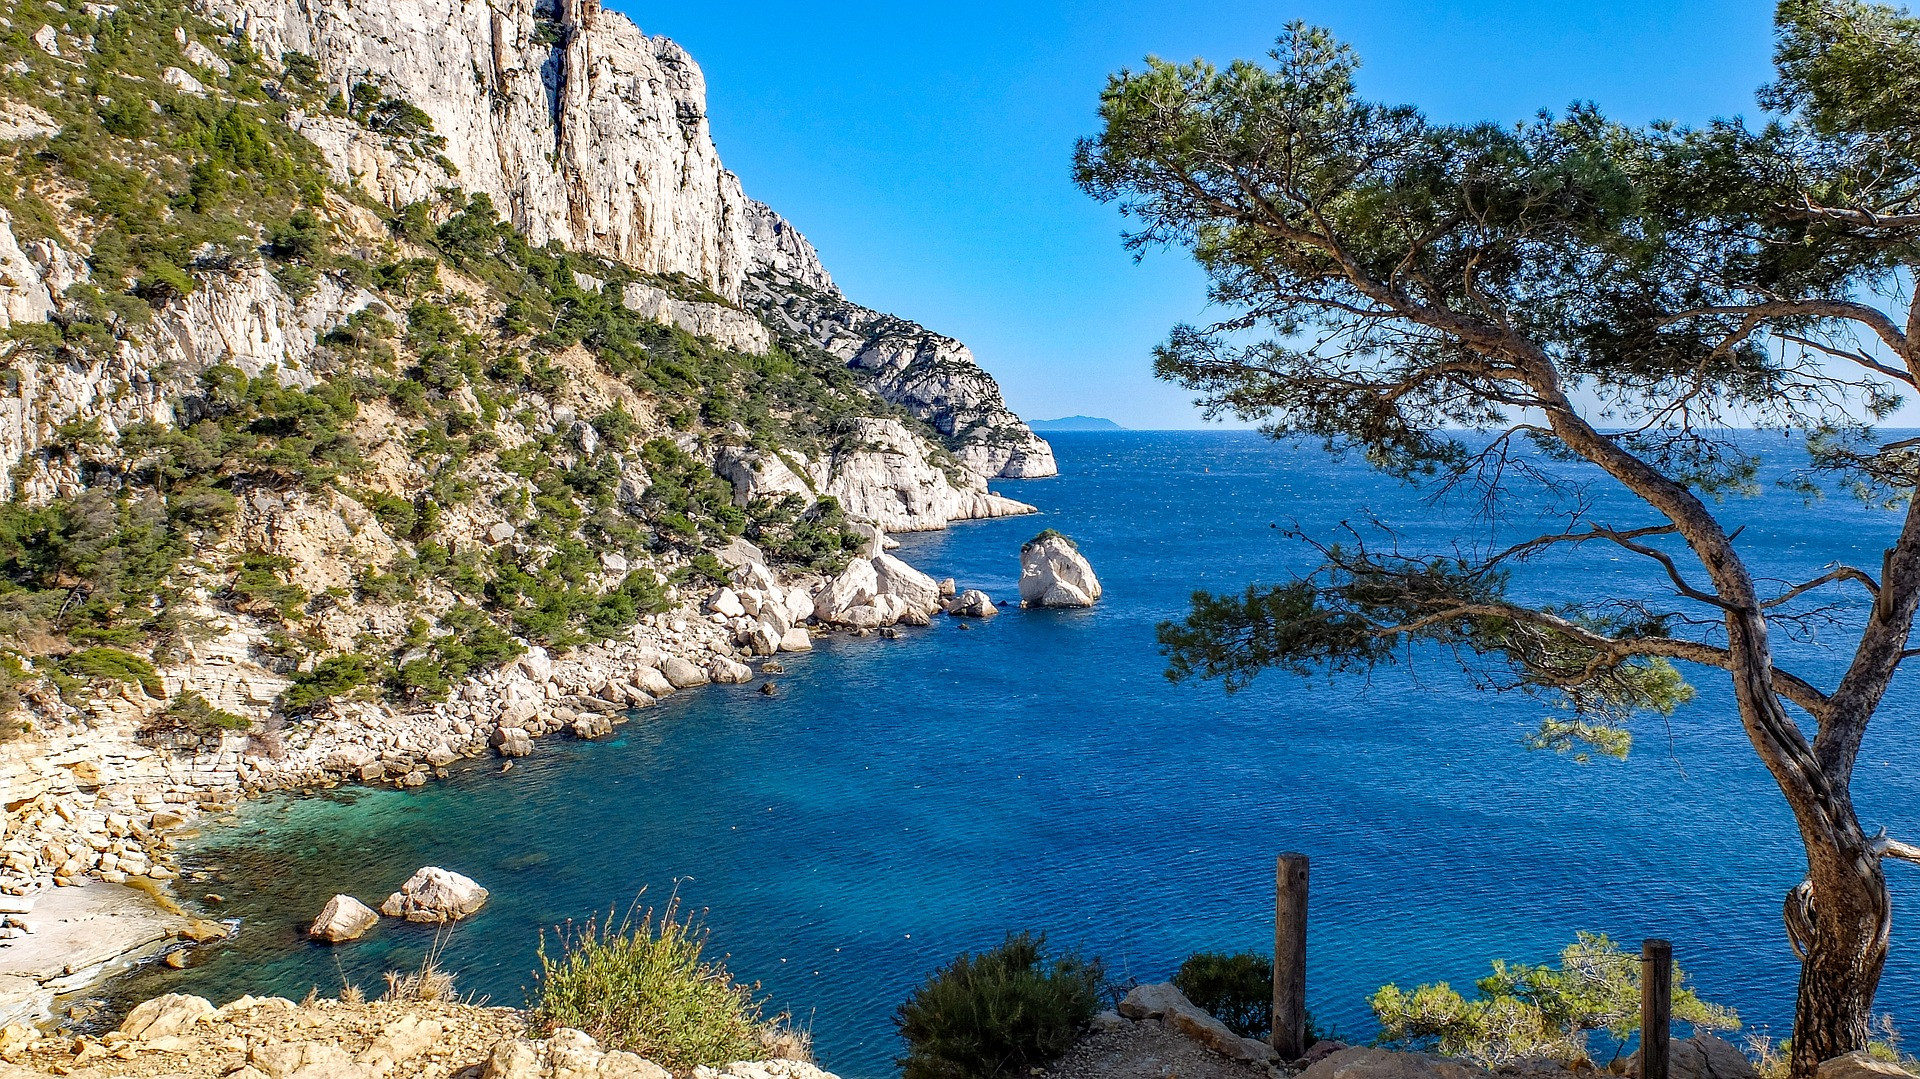 image of Les Calanques